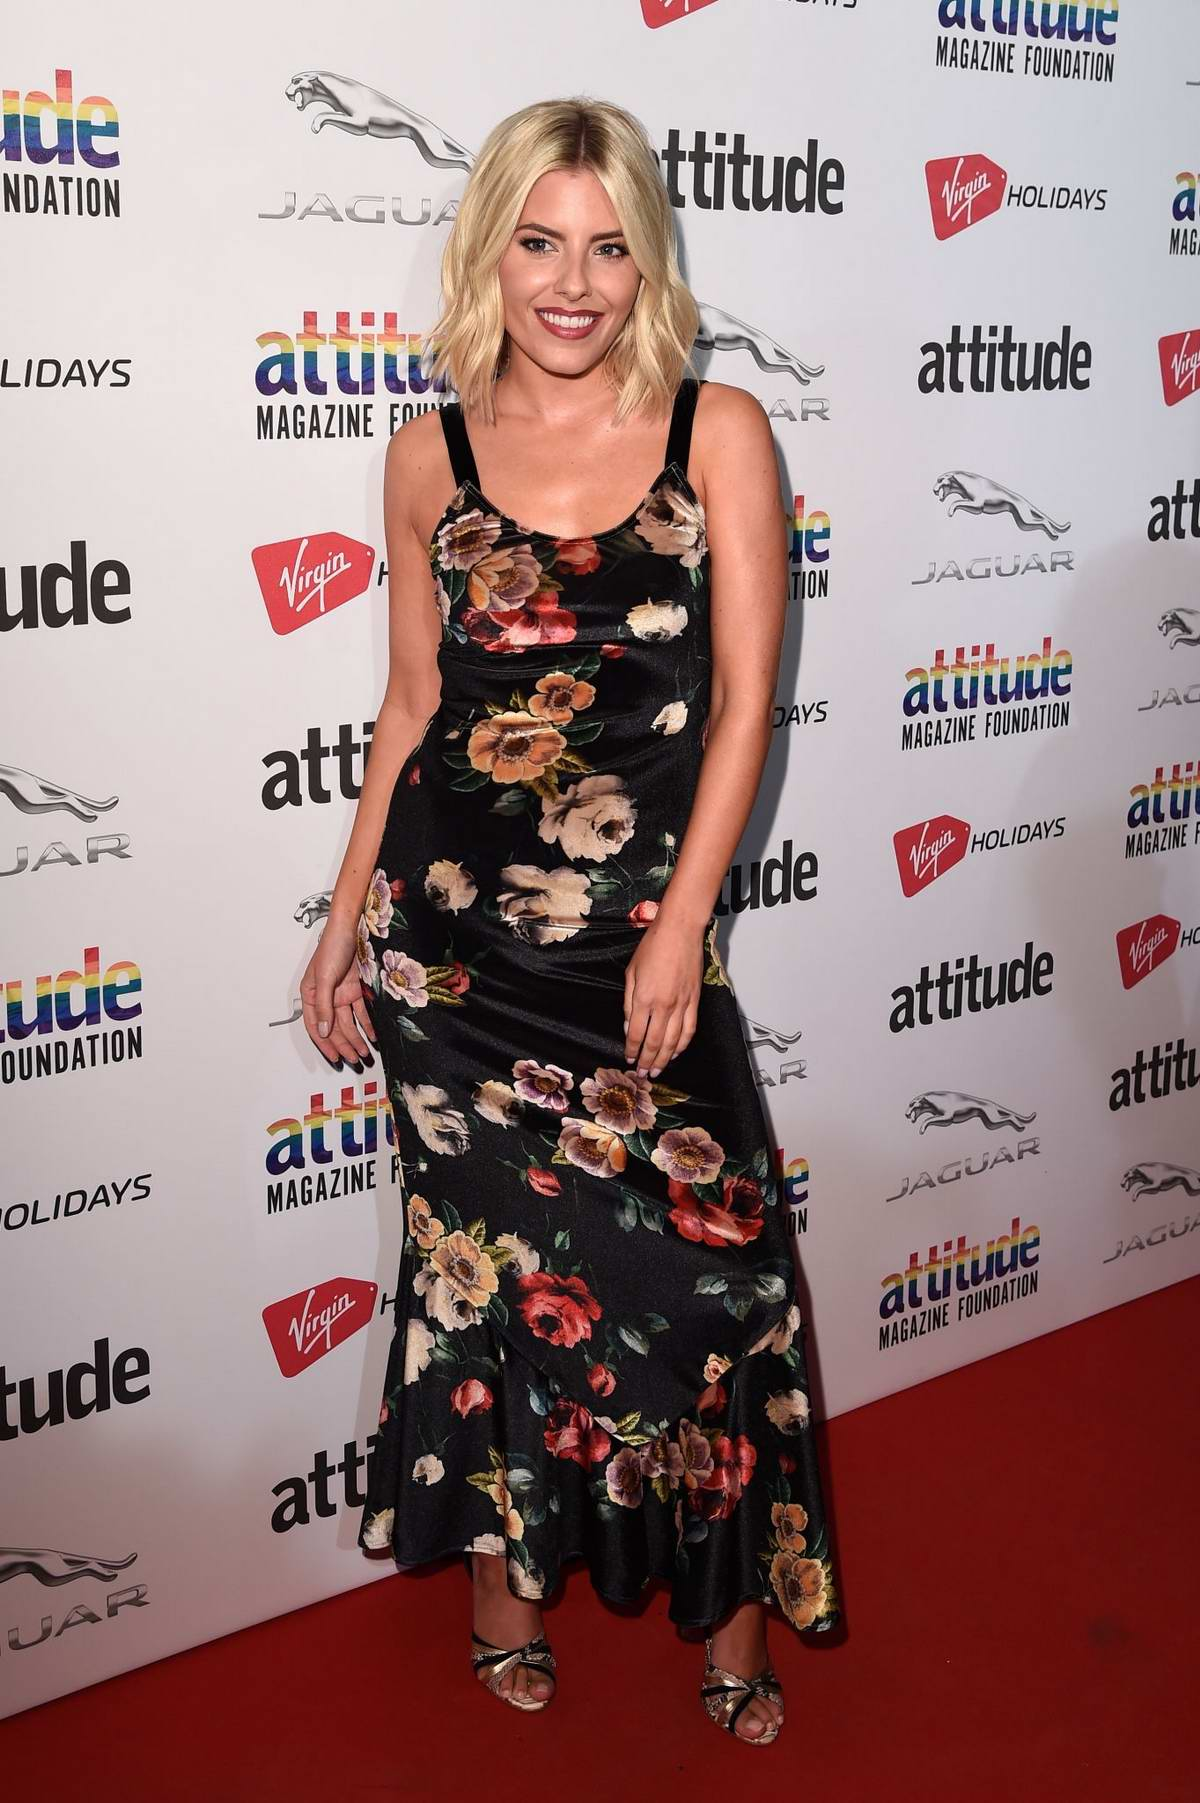 Mollie King attends The Virgin Holidays Attitude Awards in London, UK